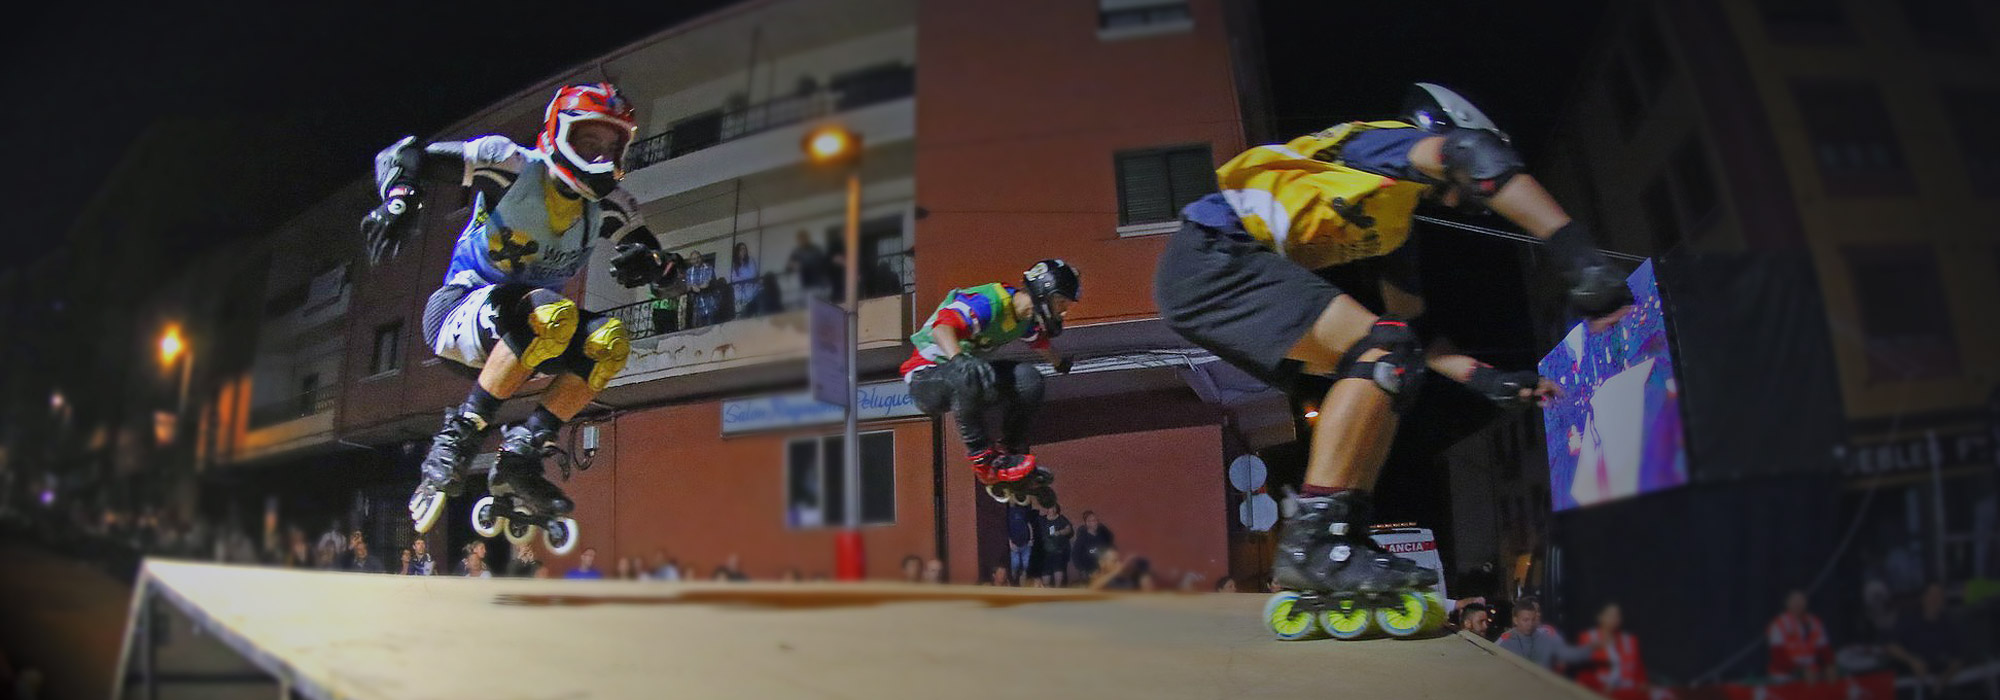 Skate cross batallas